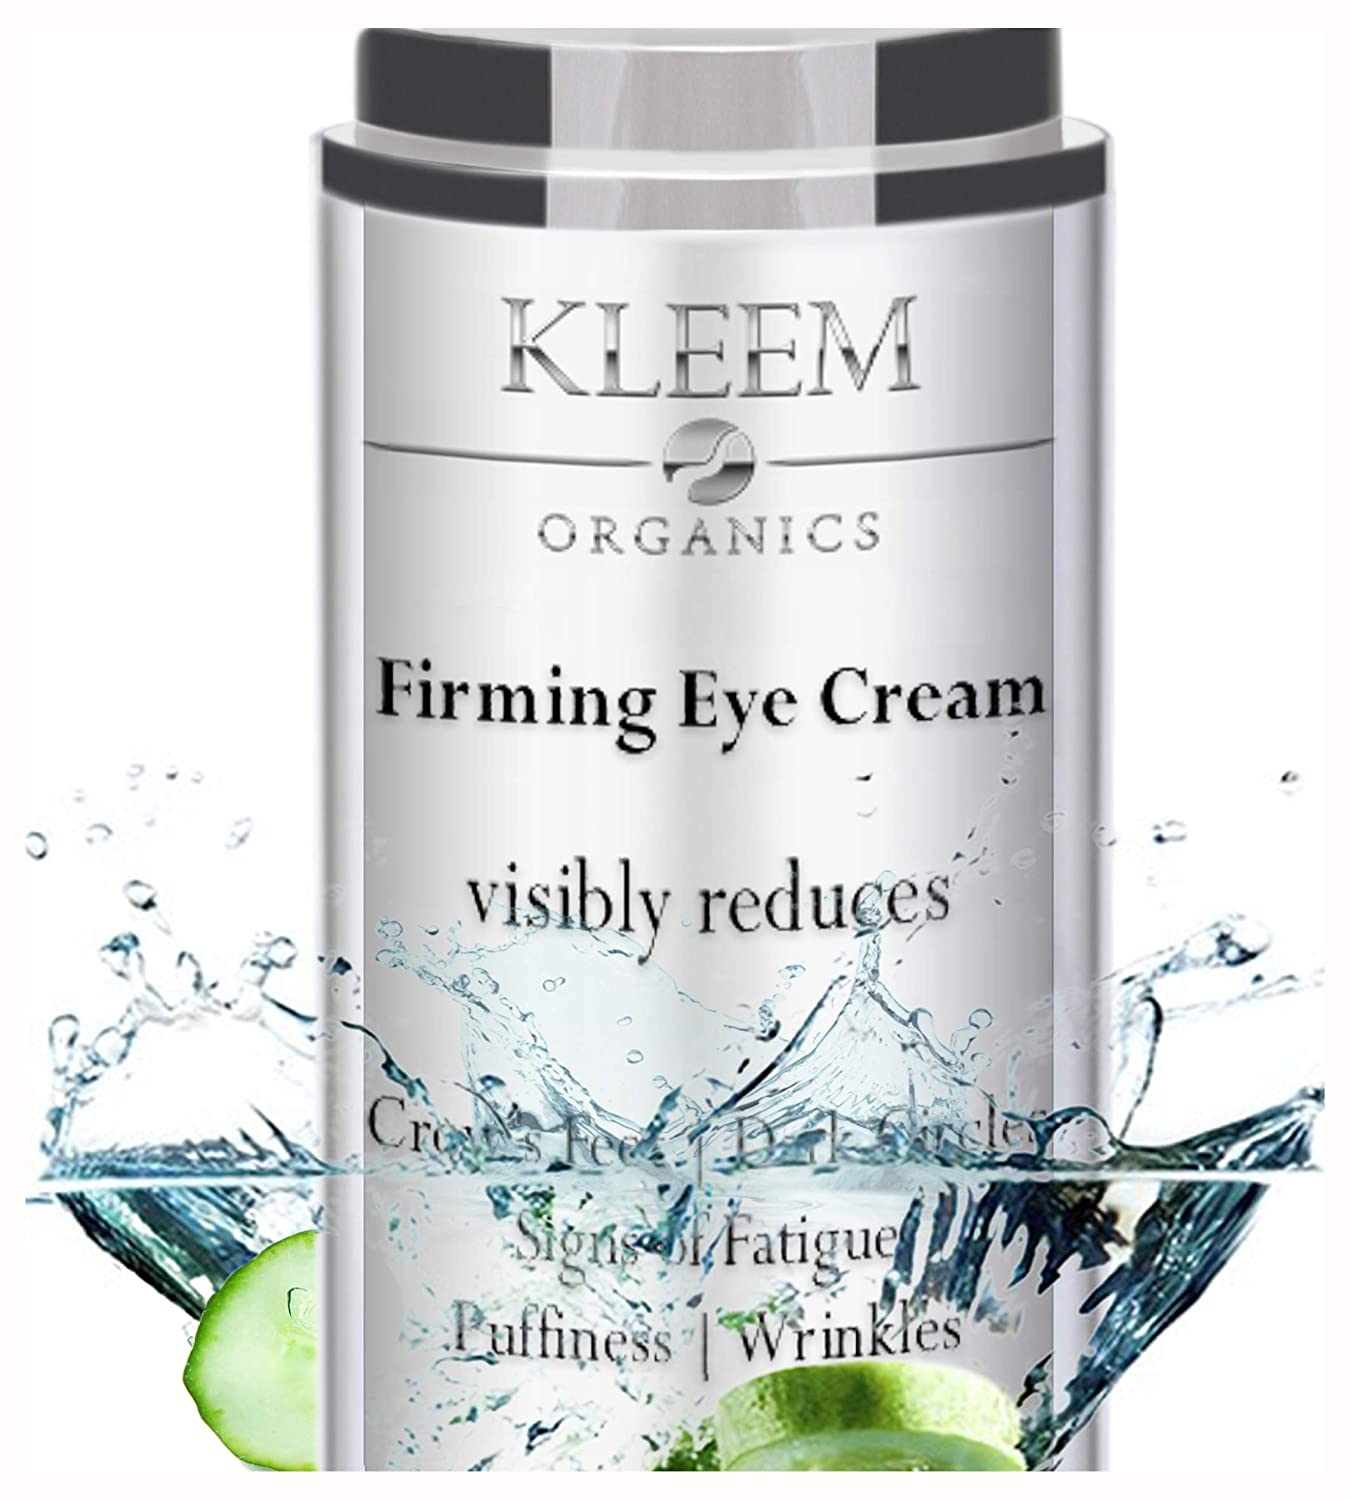 NEW Anti Aging Eye Cream for Dark Circles and Puffiness that Reduces Eye Bags, Crow's Feet, Fine Lines, and Sagginess